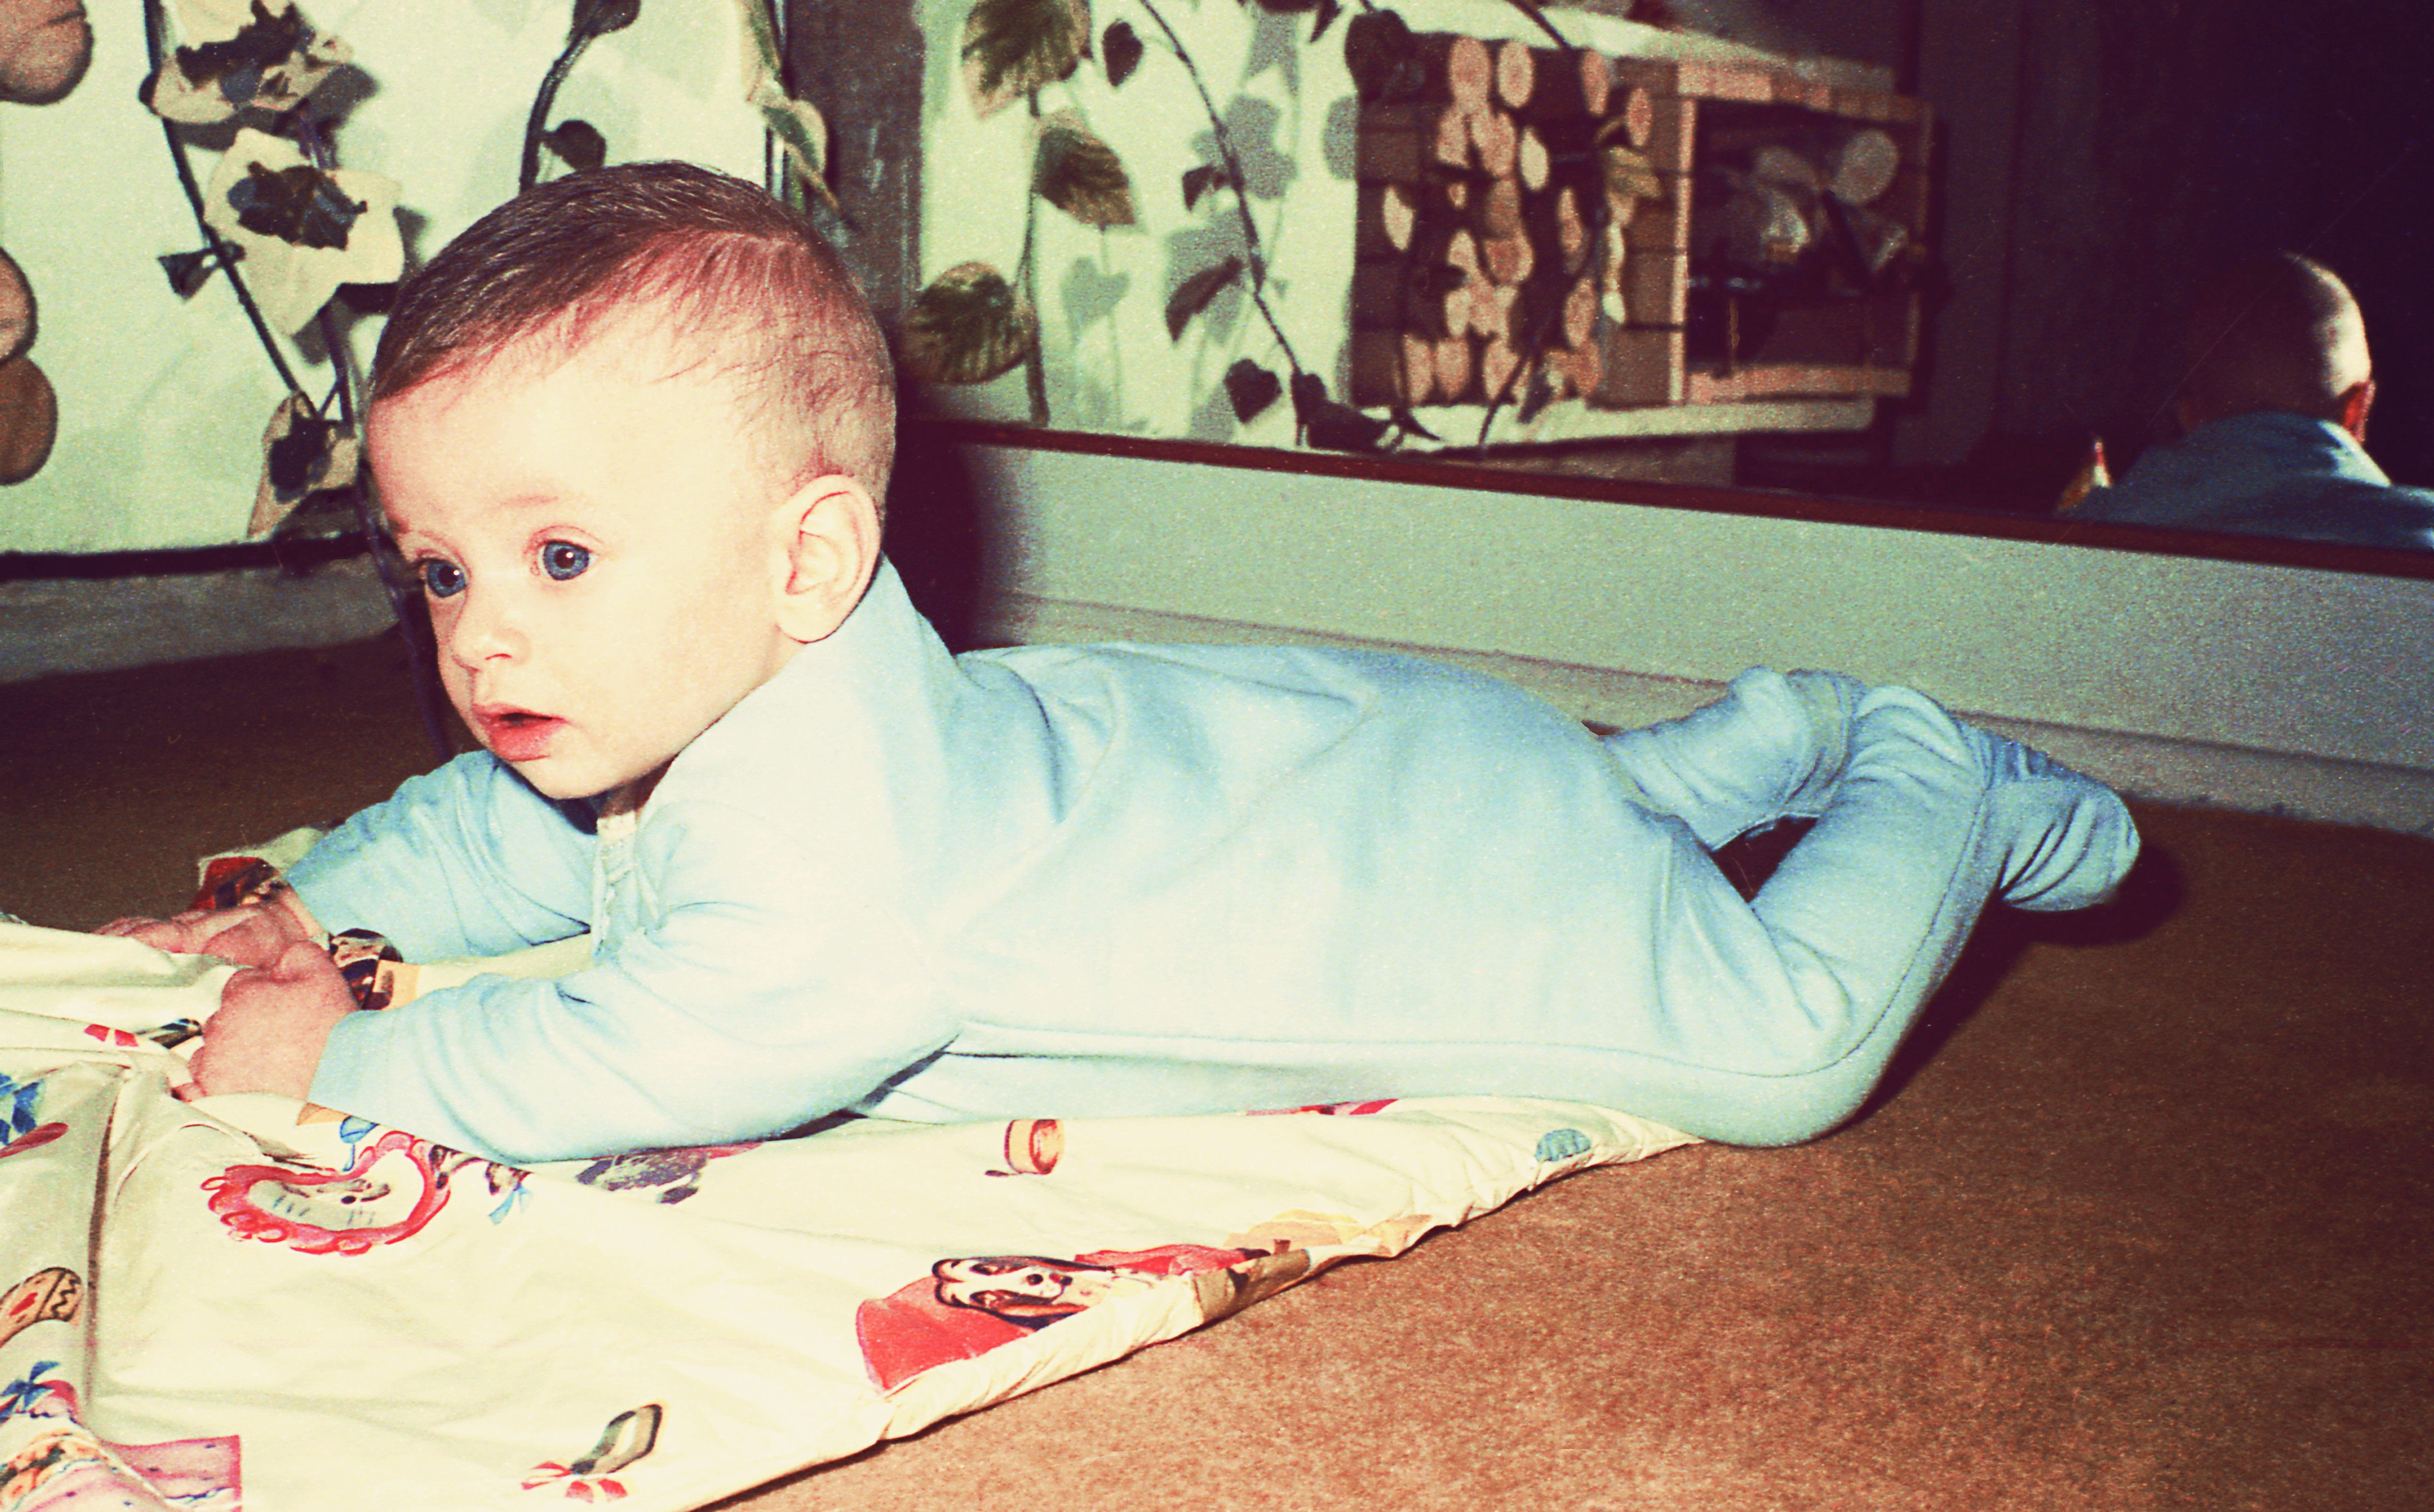 vintage color image of a cute baby boy laying on floor.